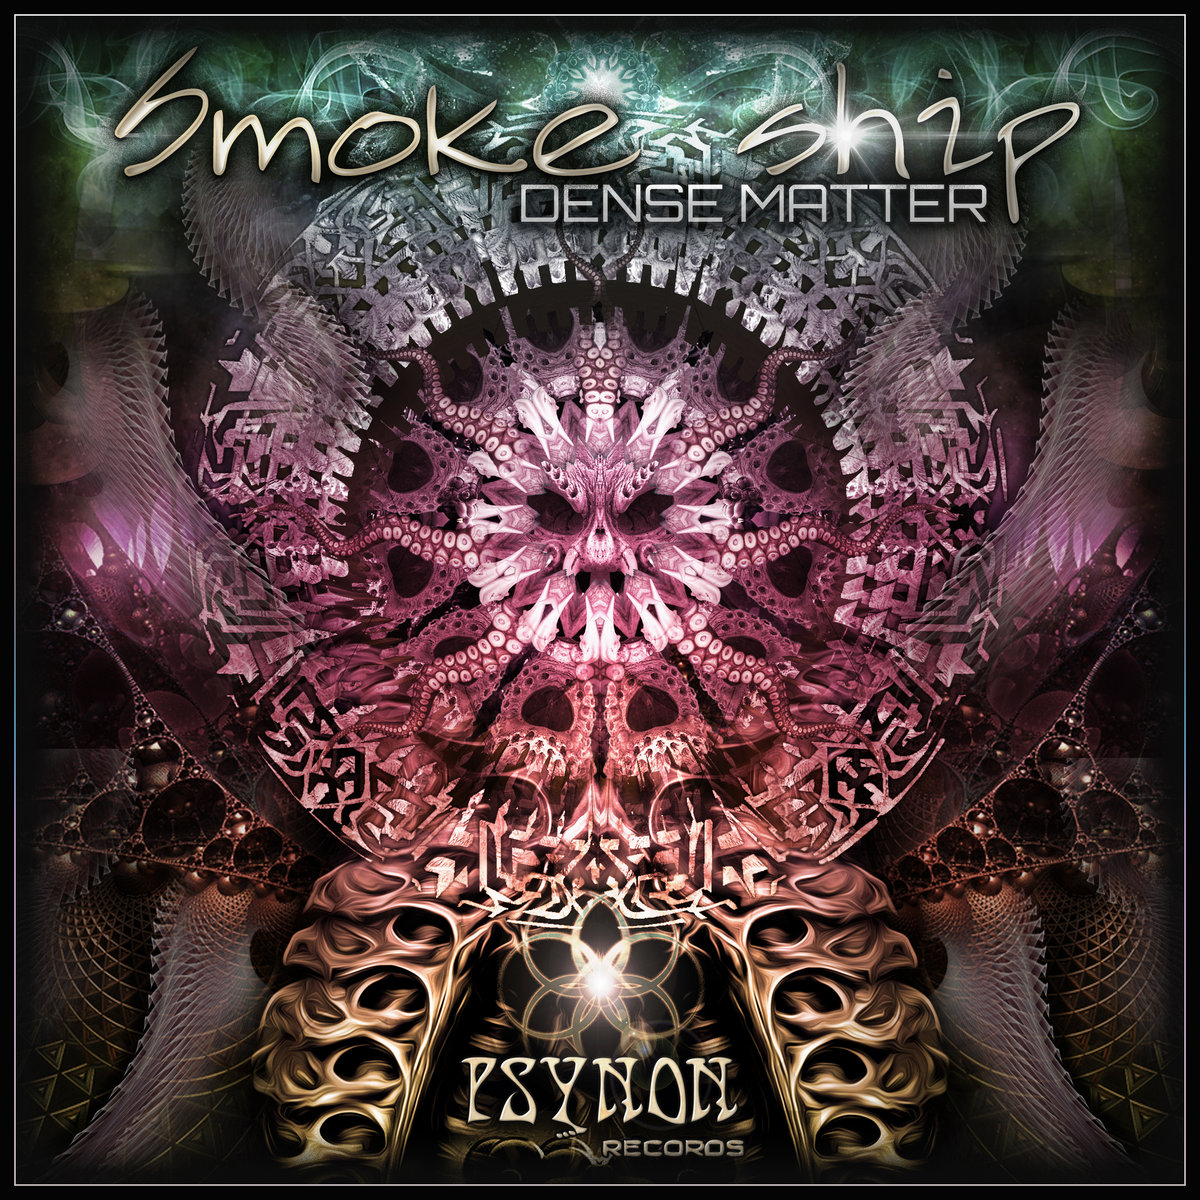 christion full of smoke album mp3